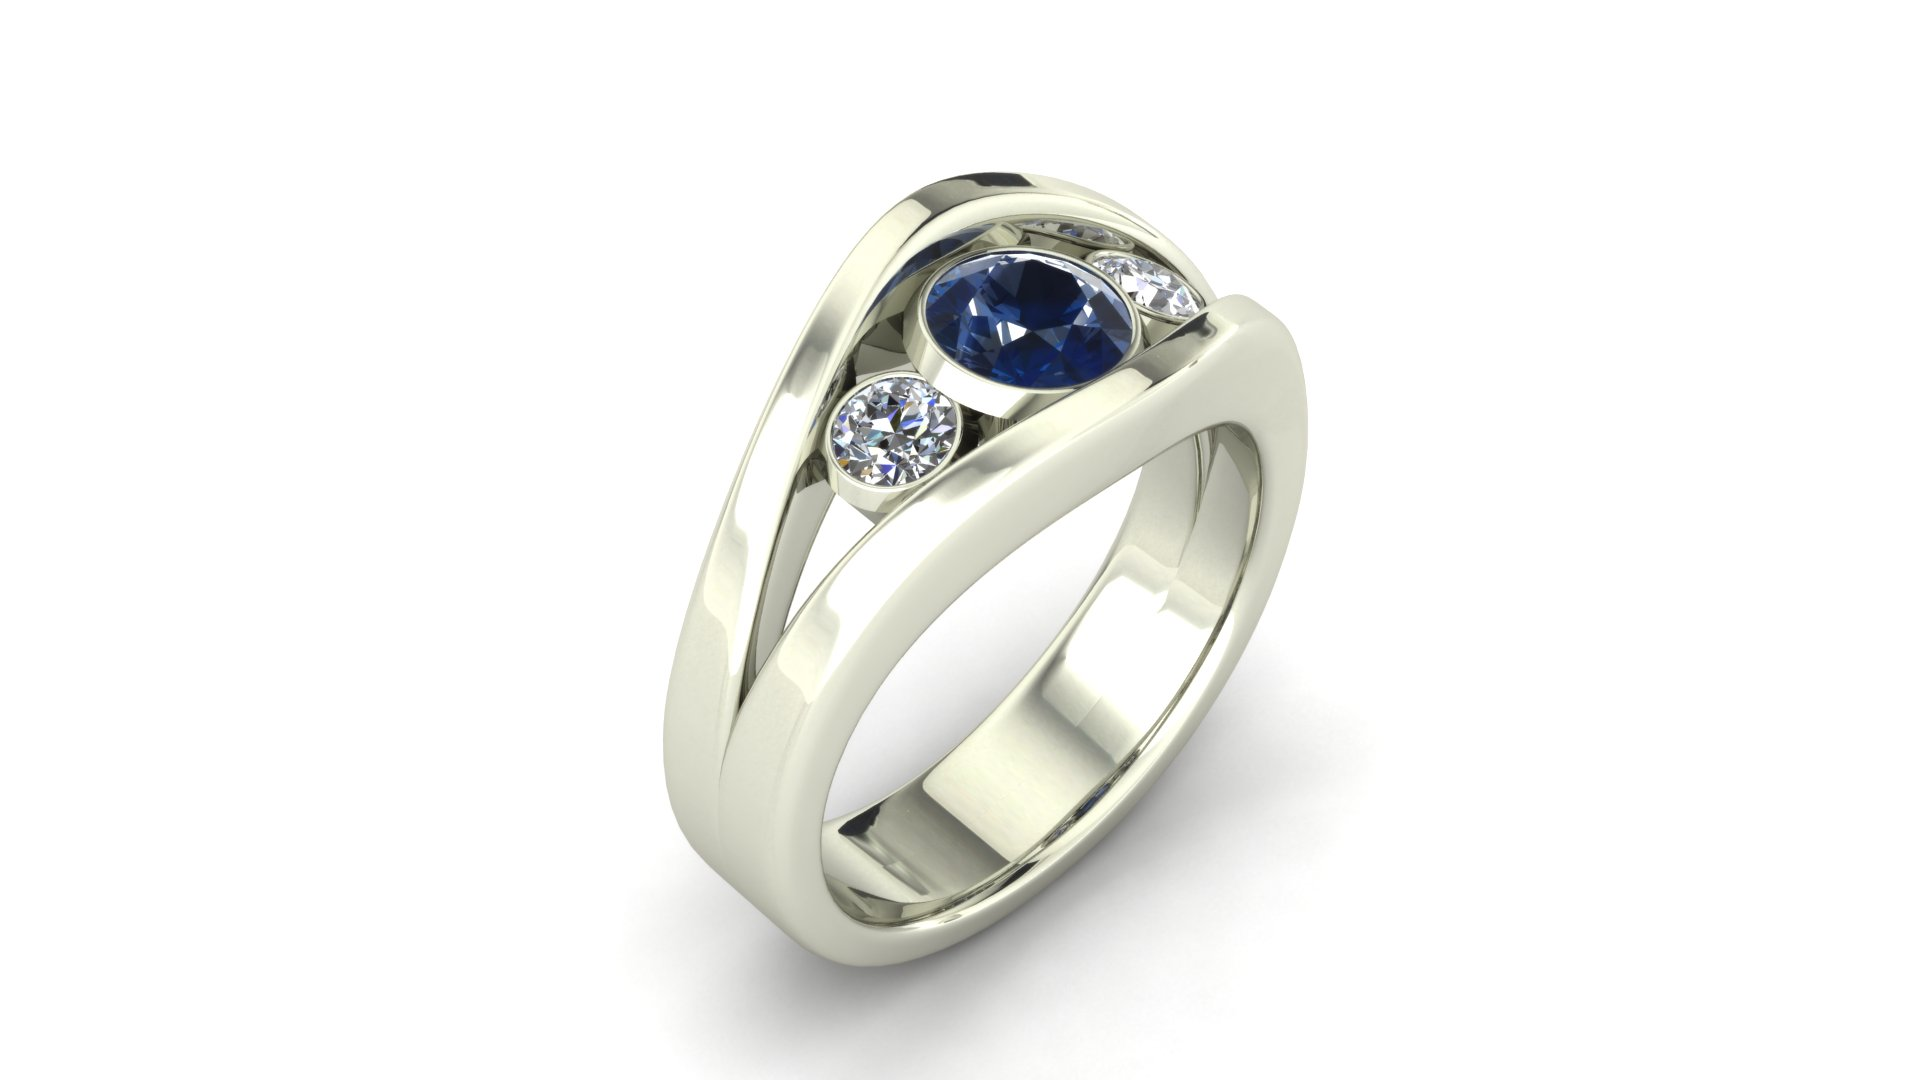 3-STONE SAPPHIRE AND DIAMOND RING